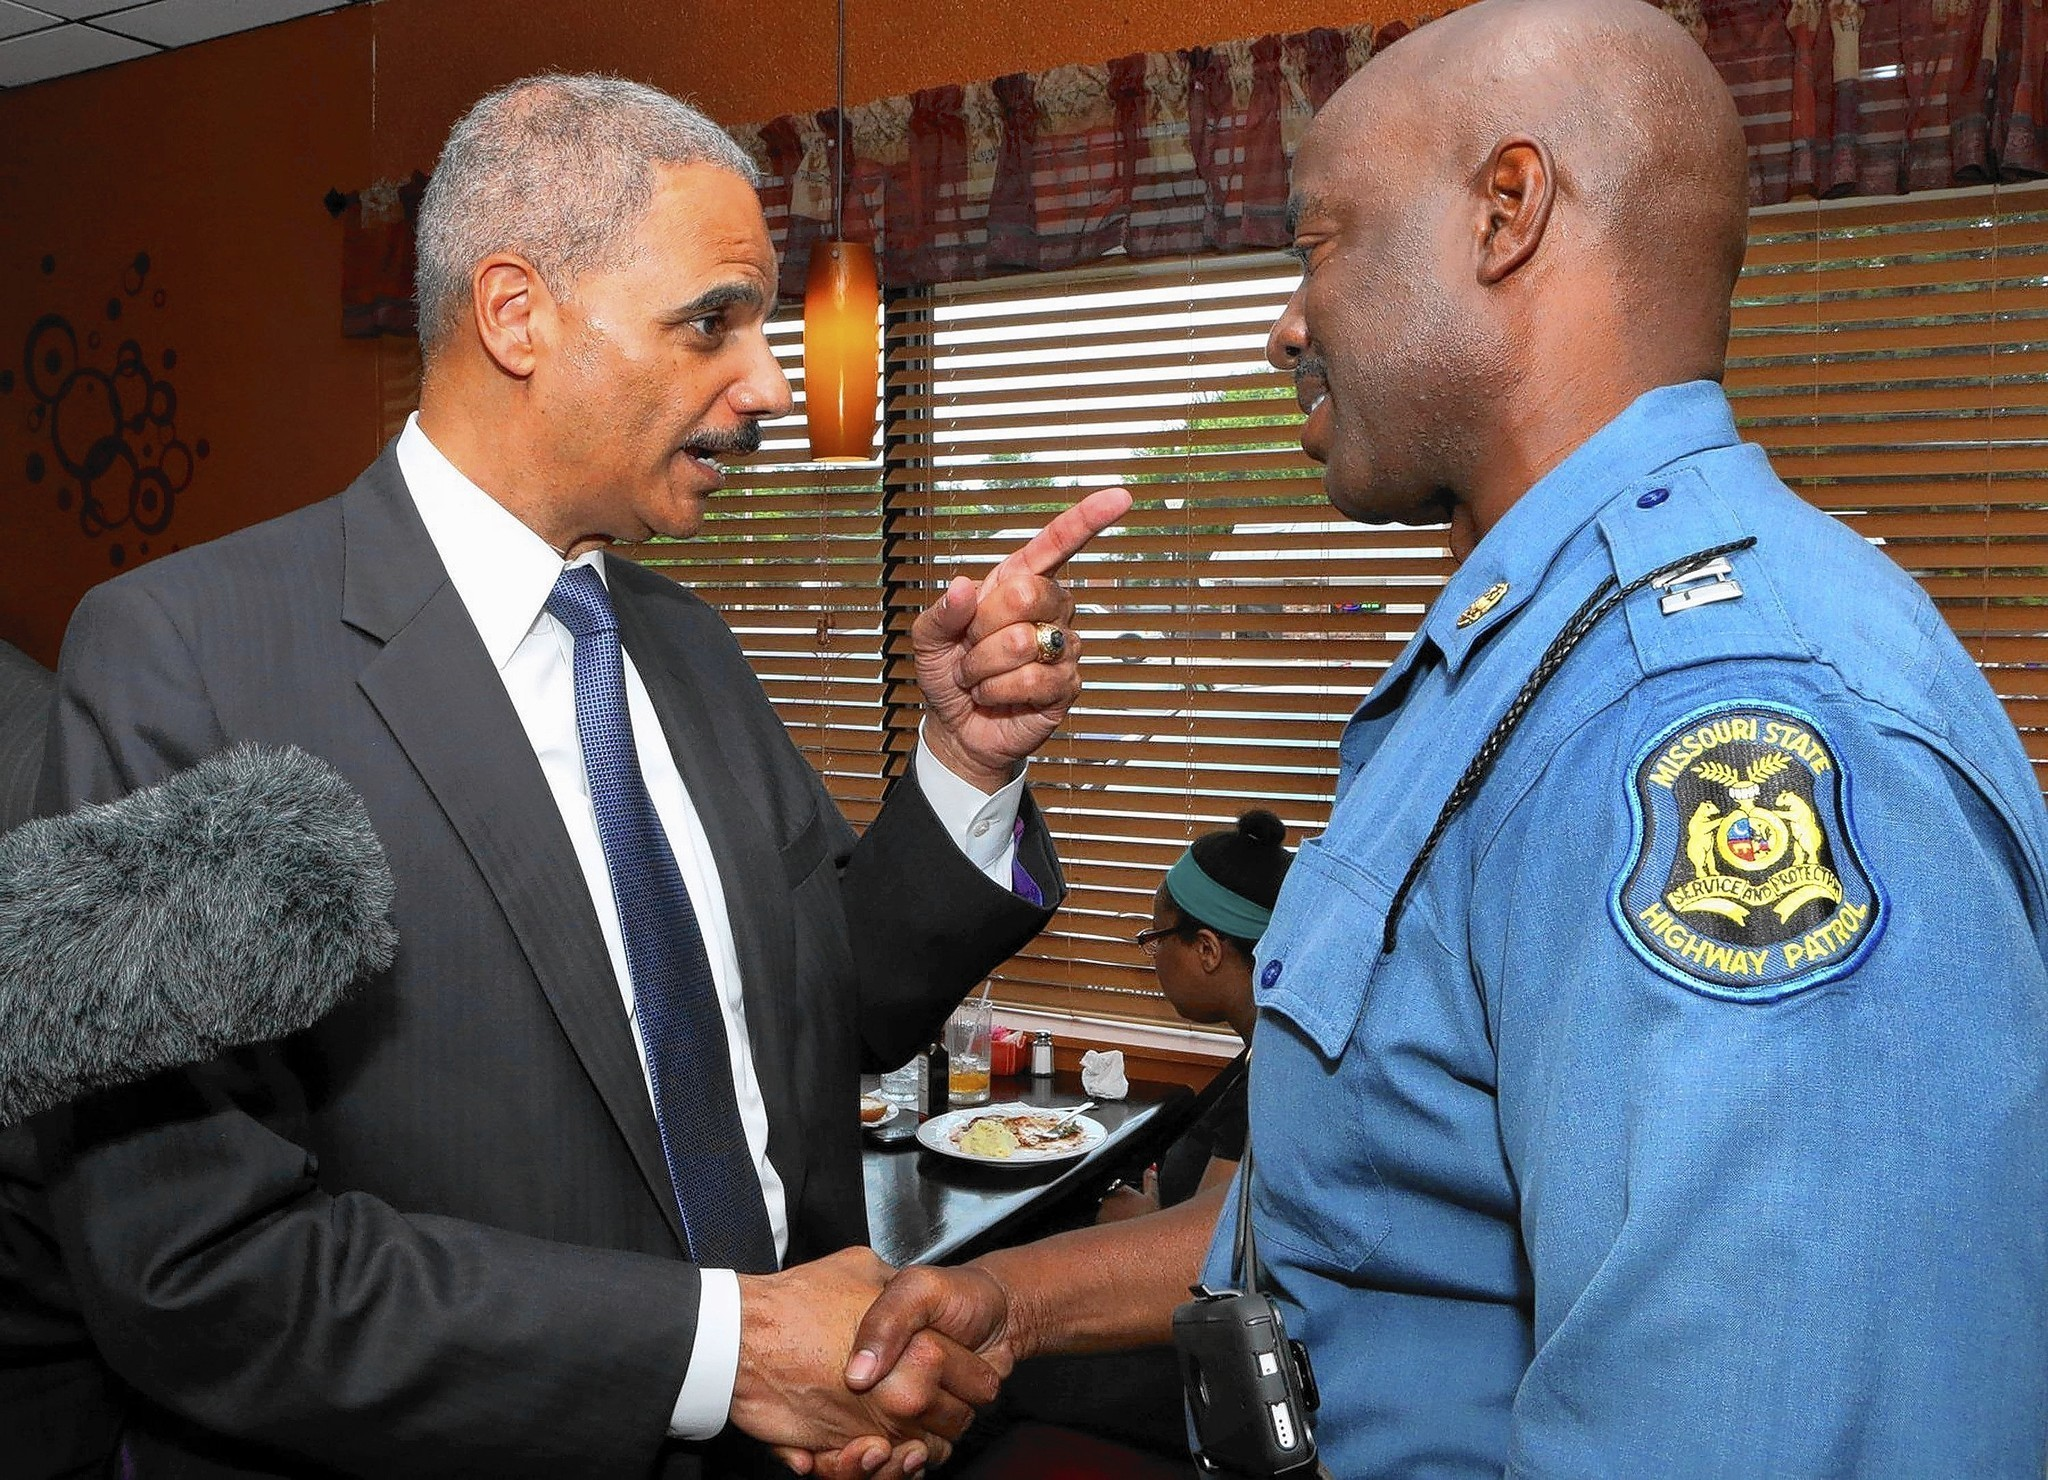 http://www.trbimg.com/img-53faae95/turbine/ct-eric-holder-ferguson-michael-brown-riots-perspe-20140823